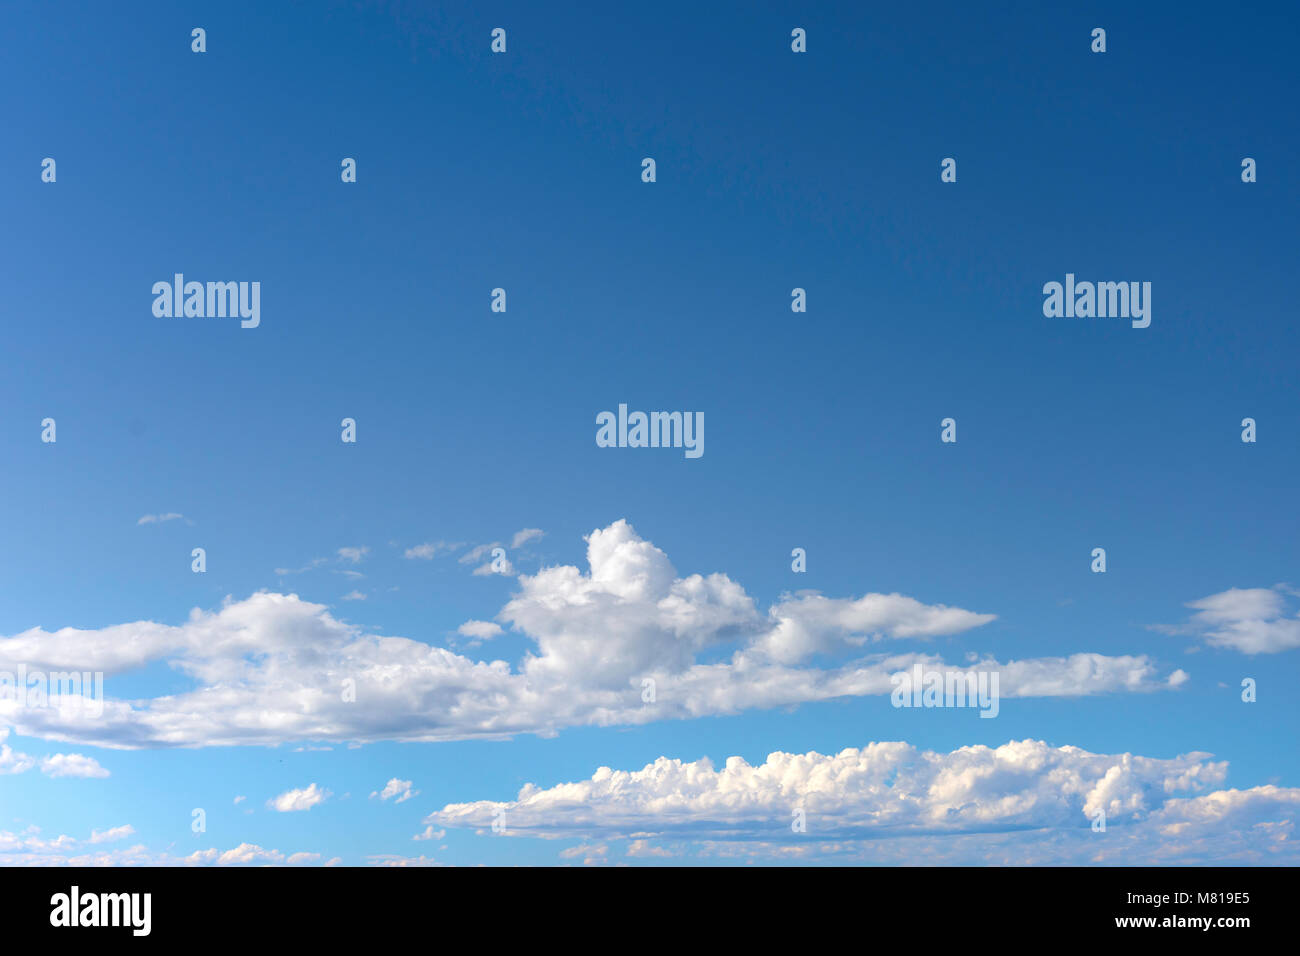 White cumulus clouds and blue sky, Christchurch, Canterbury, New Zealand - Stock Image